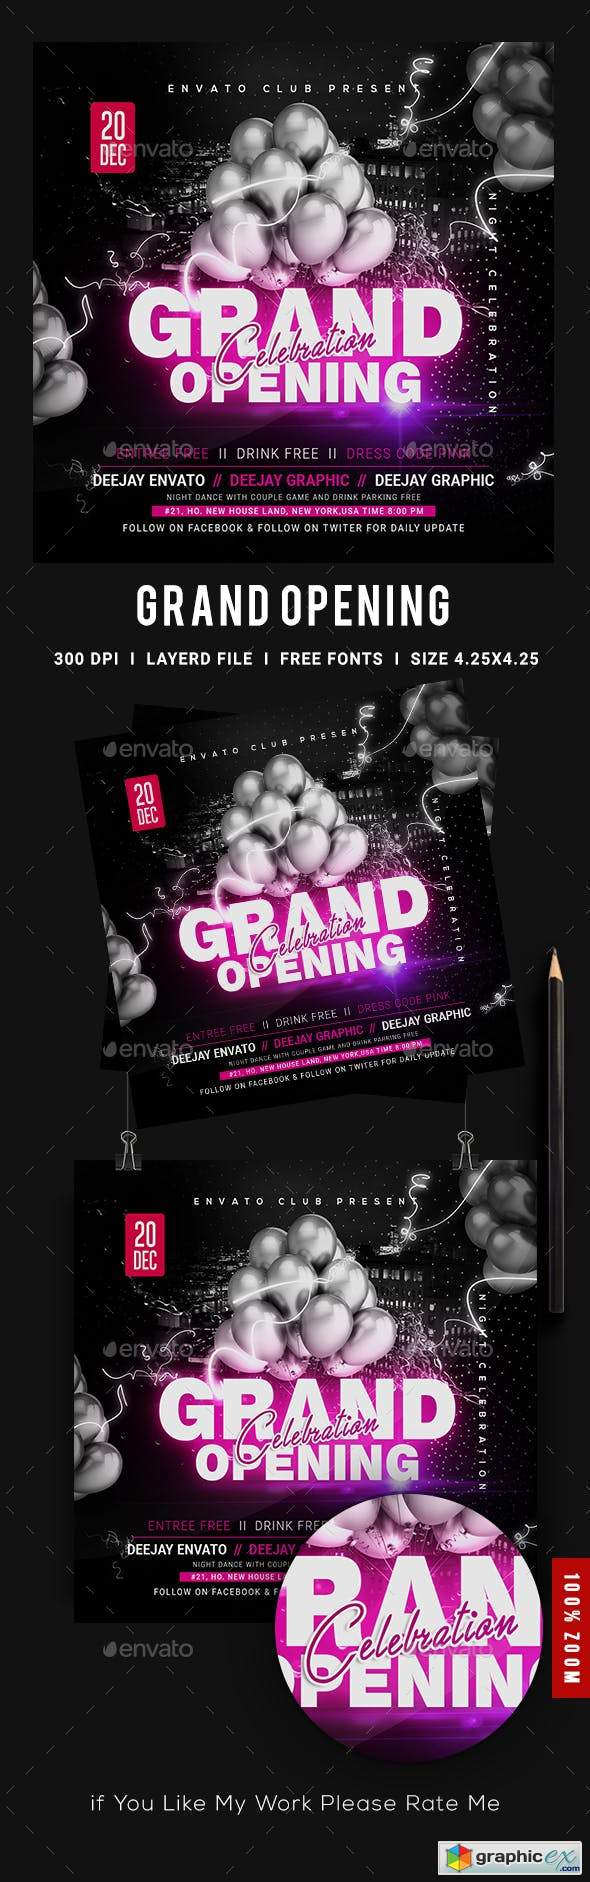 Grand Opening Flyer 23563264